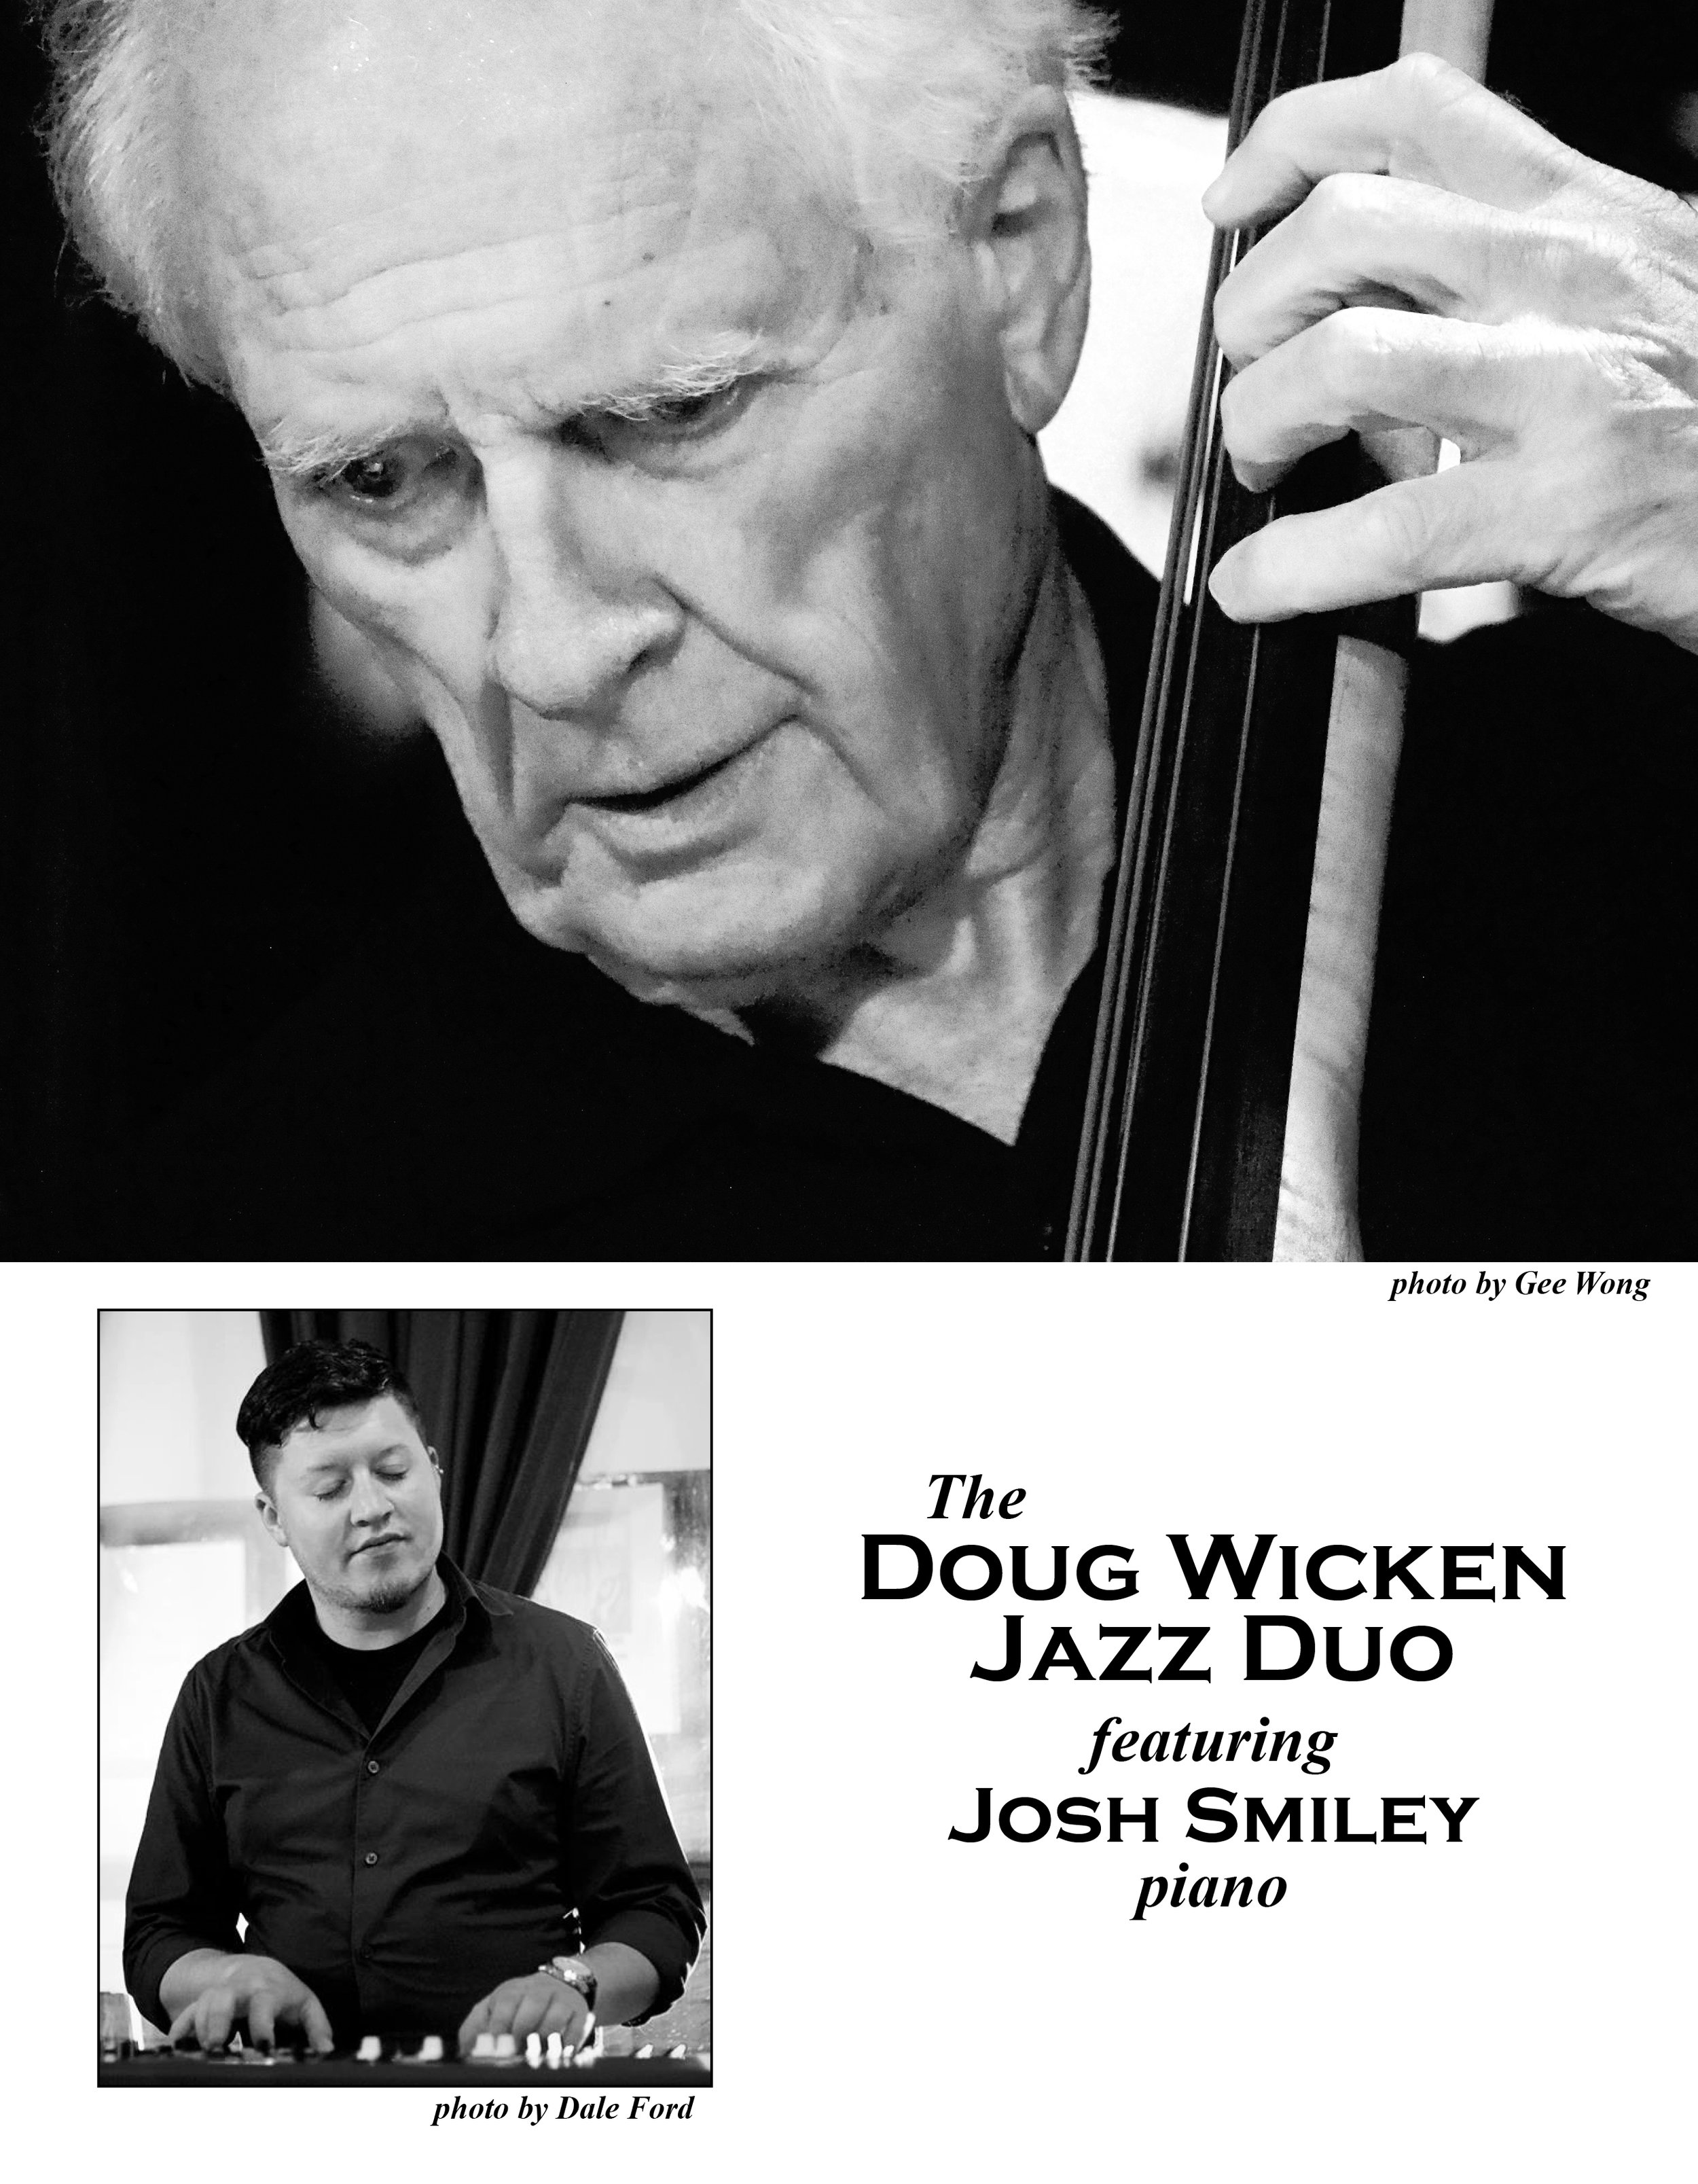 DOUG WICKEN JAZZ DUO.jpg